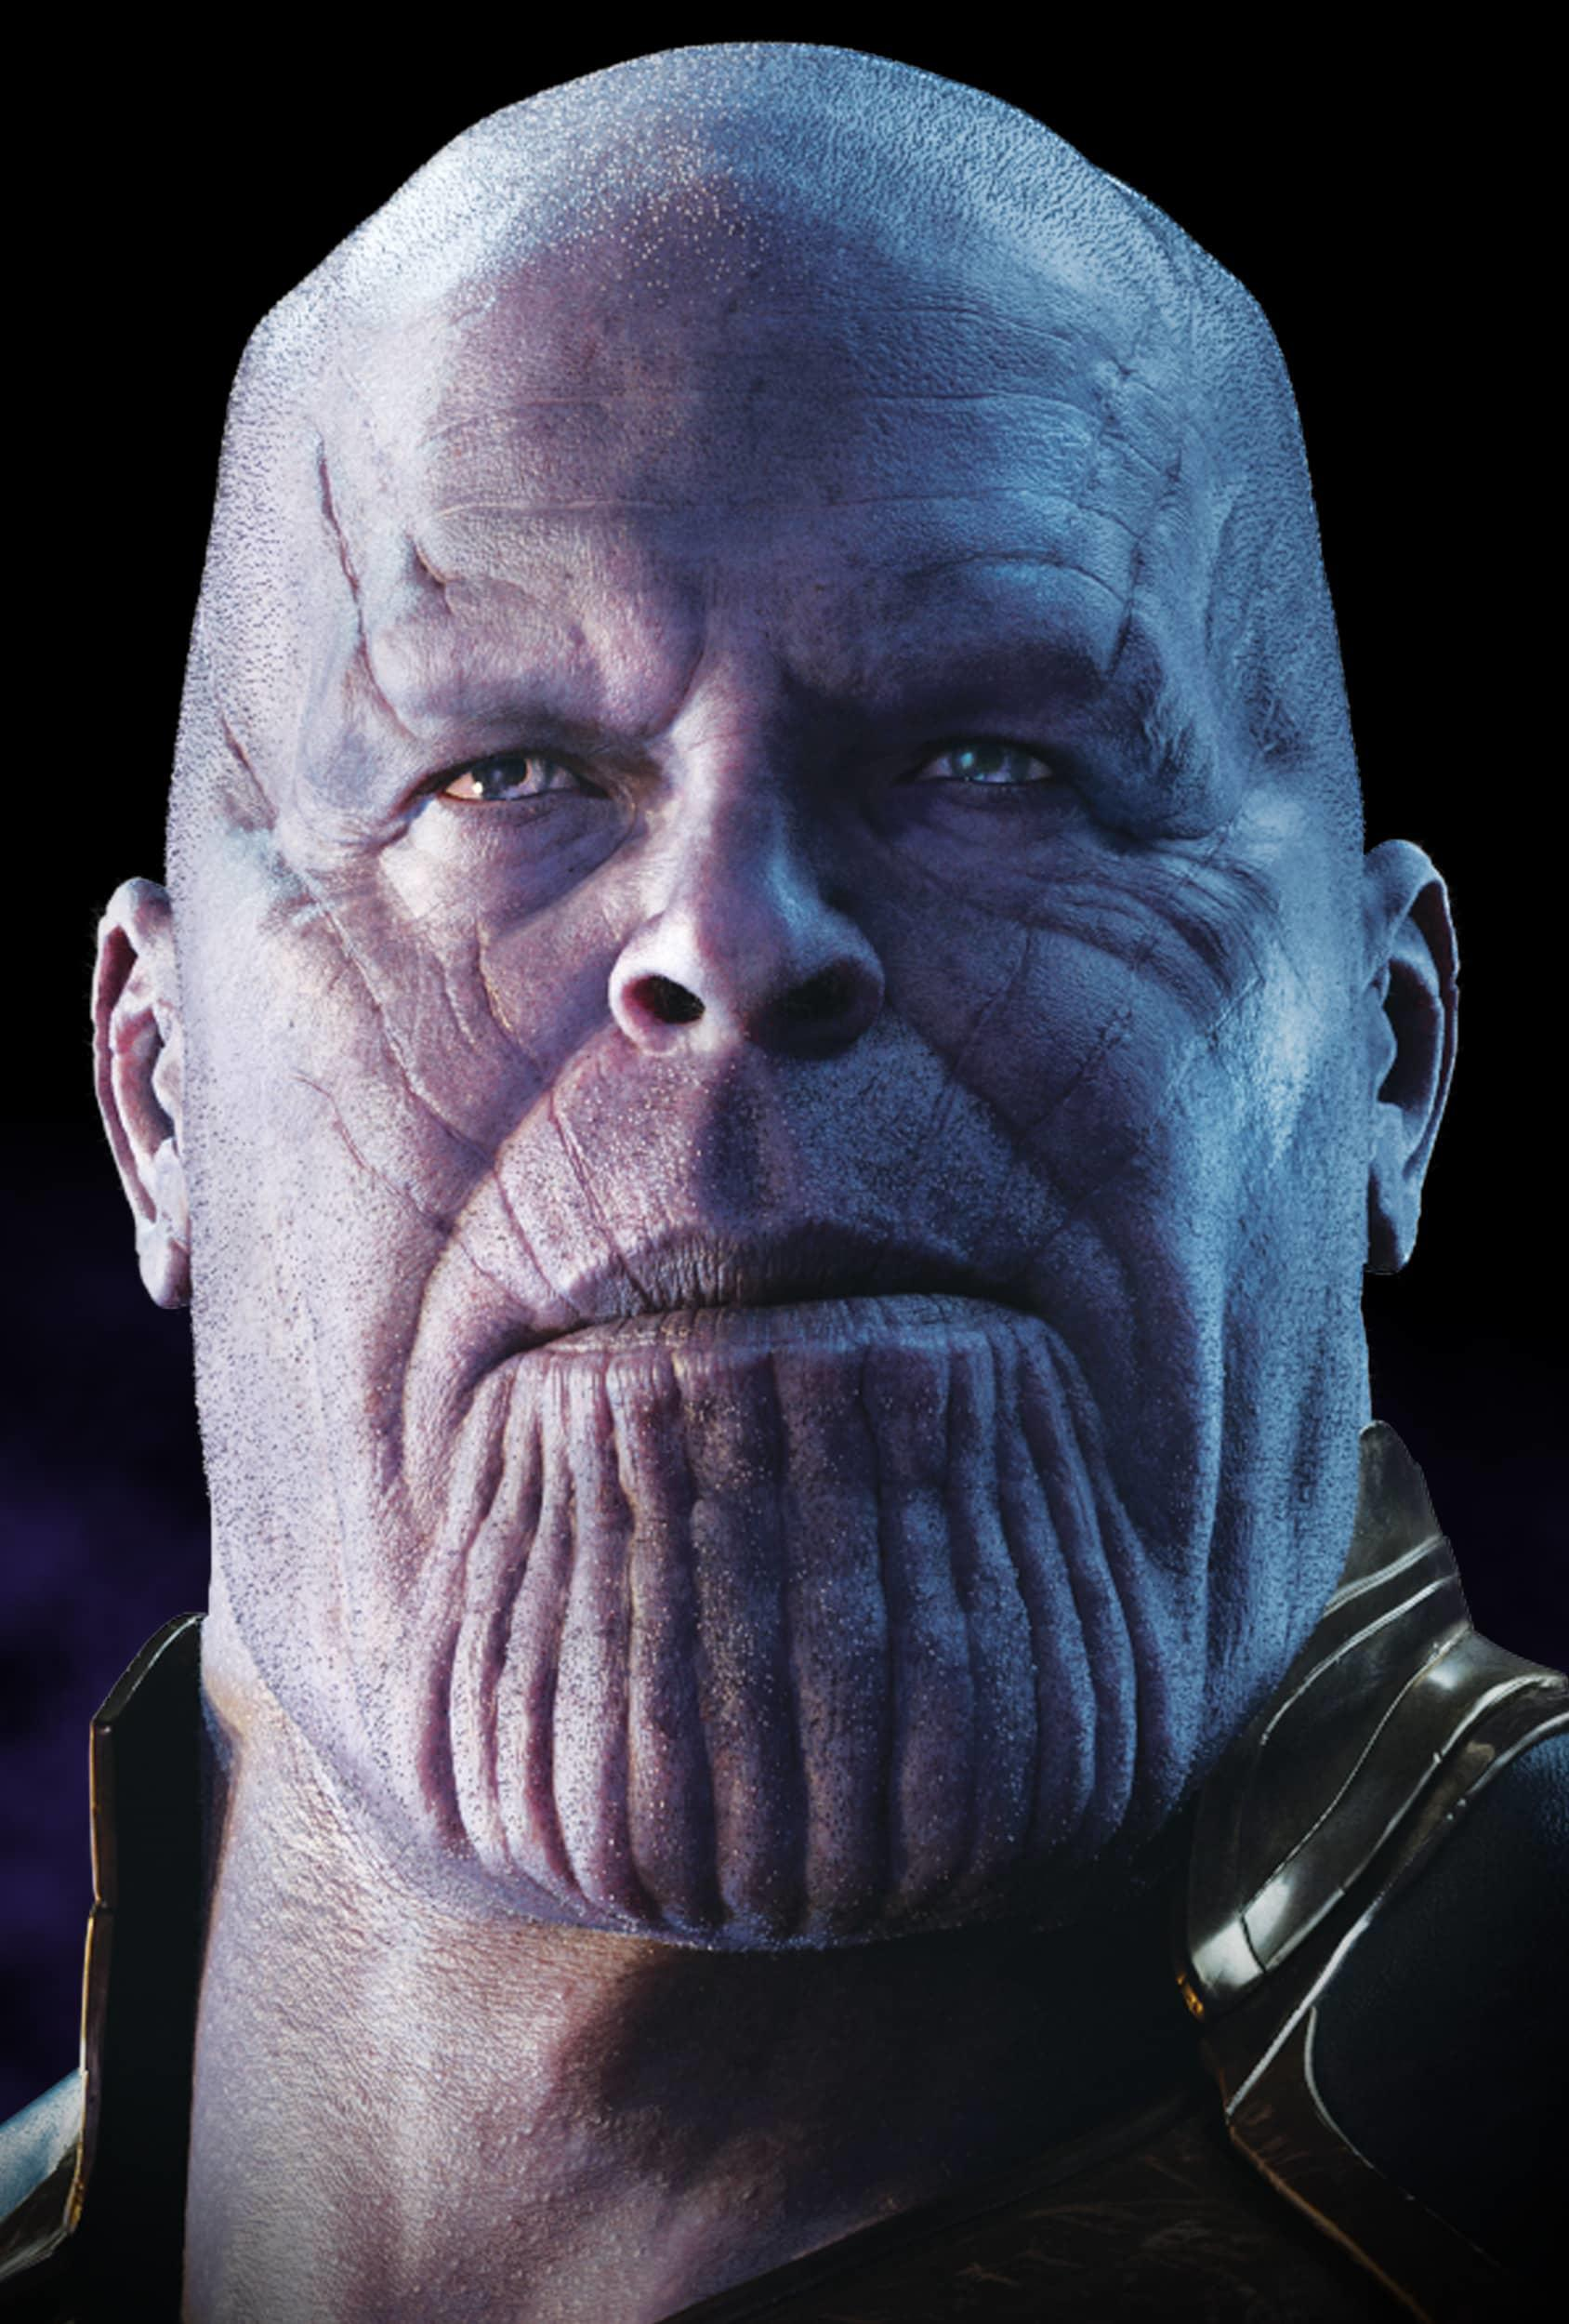 Marvel Studios' Avengers: Endgame Movie Cast Thanos Josh Brolin